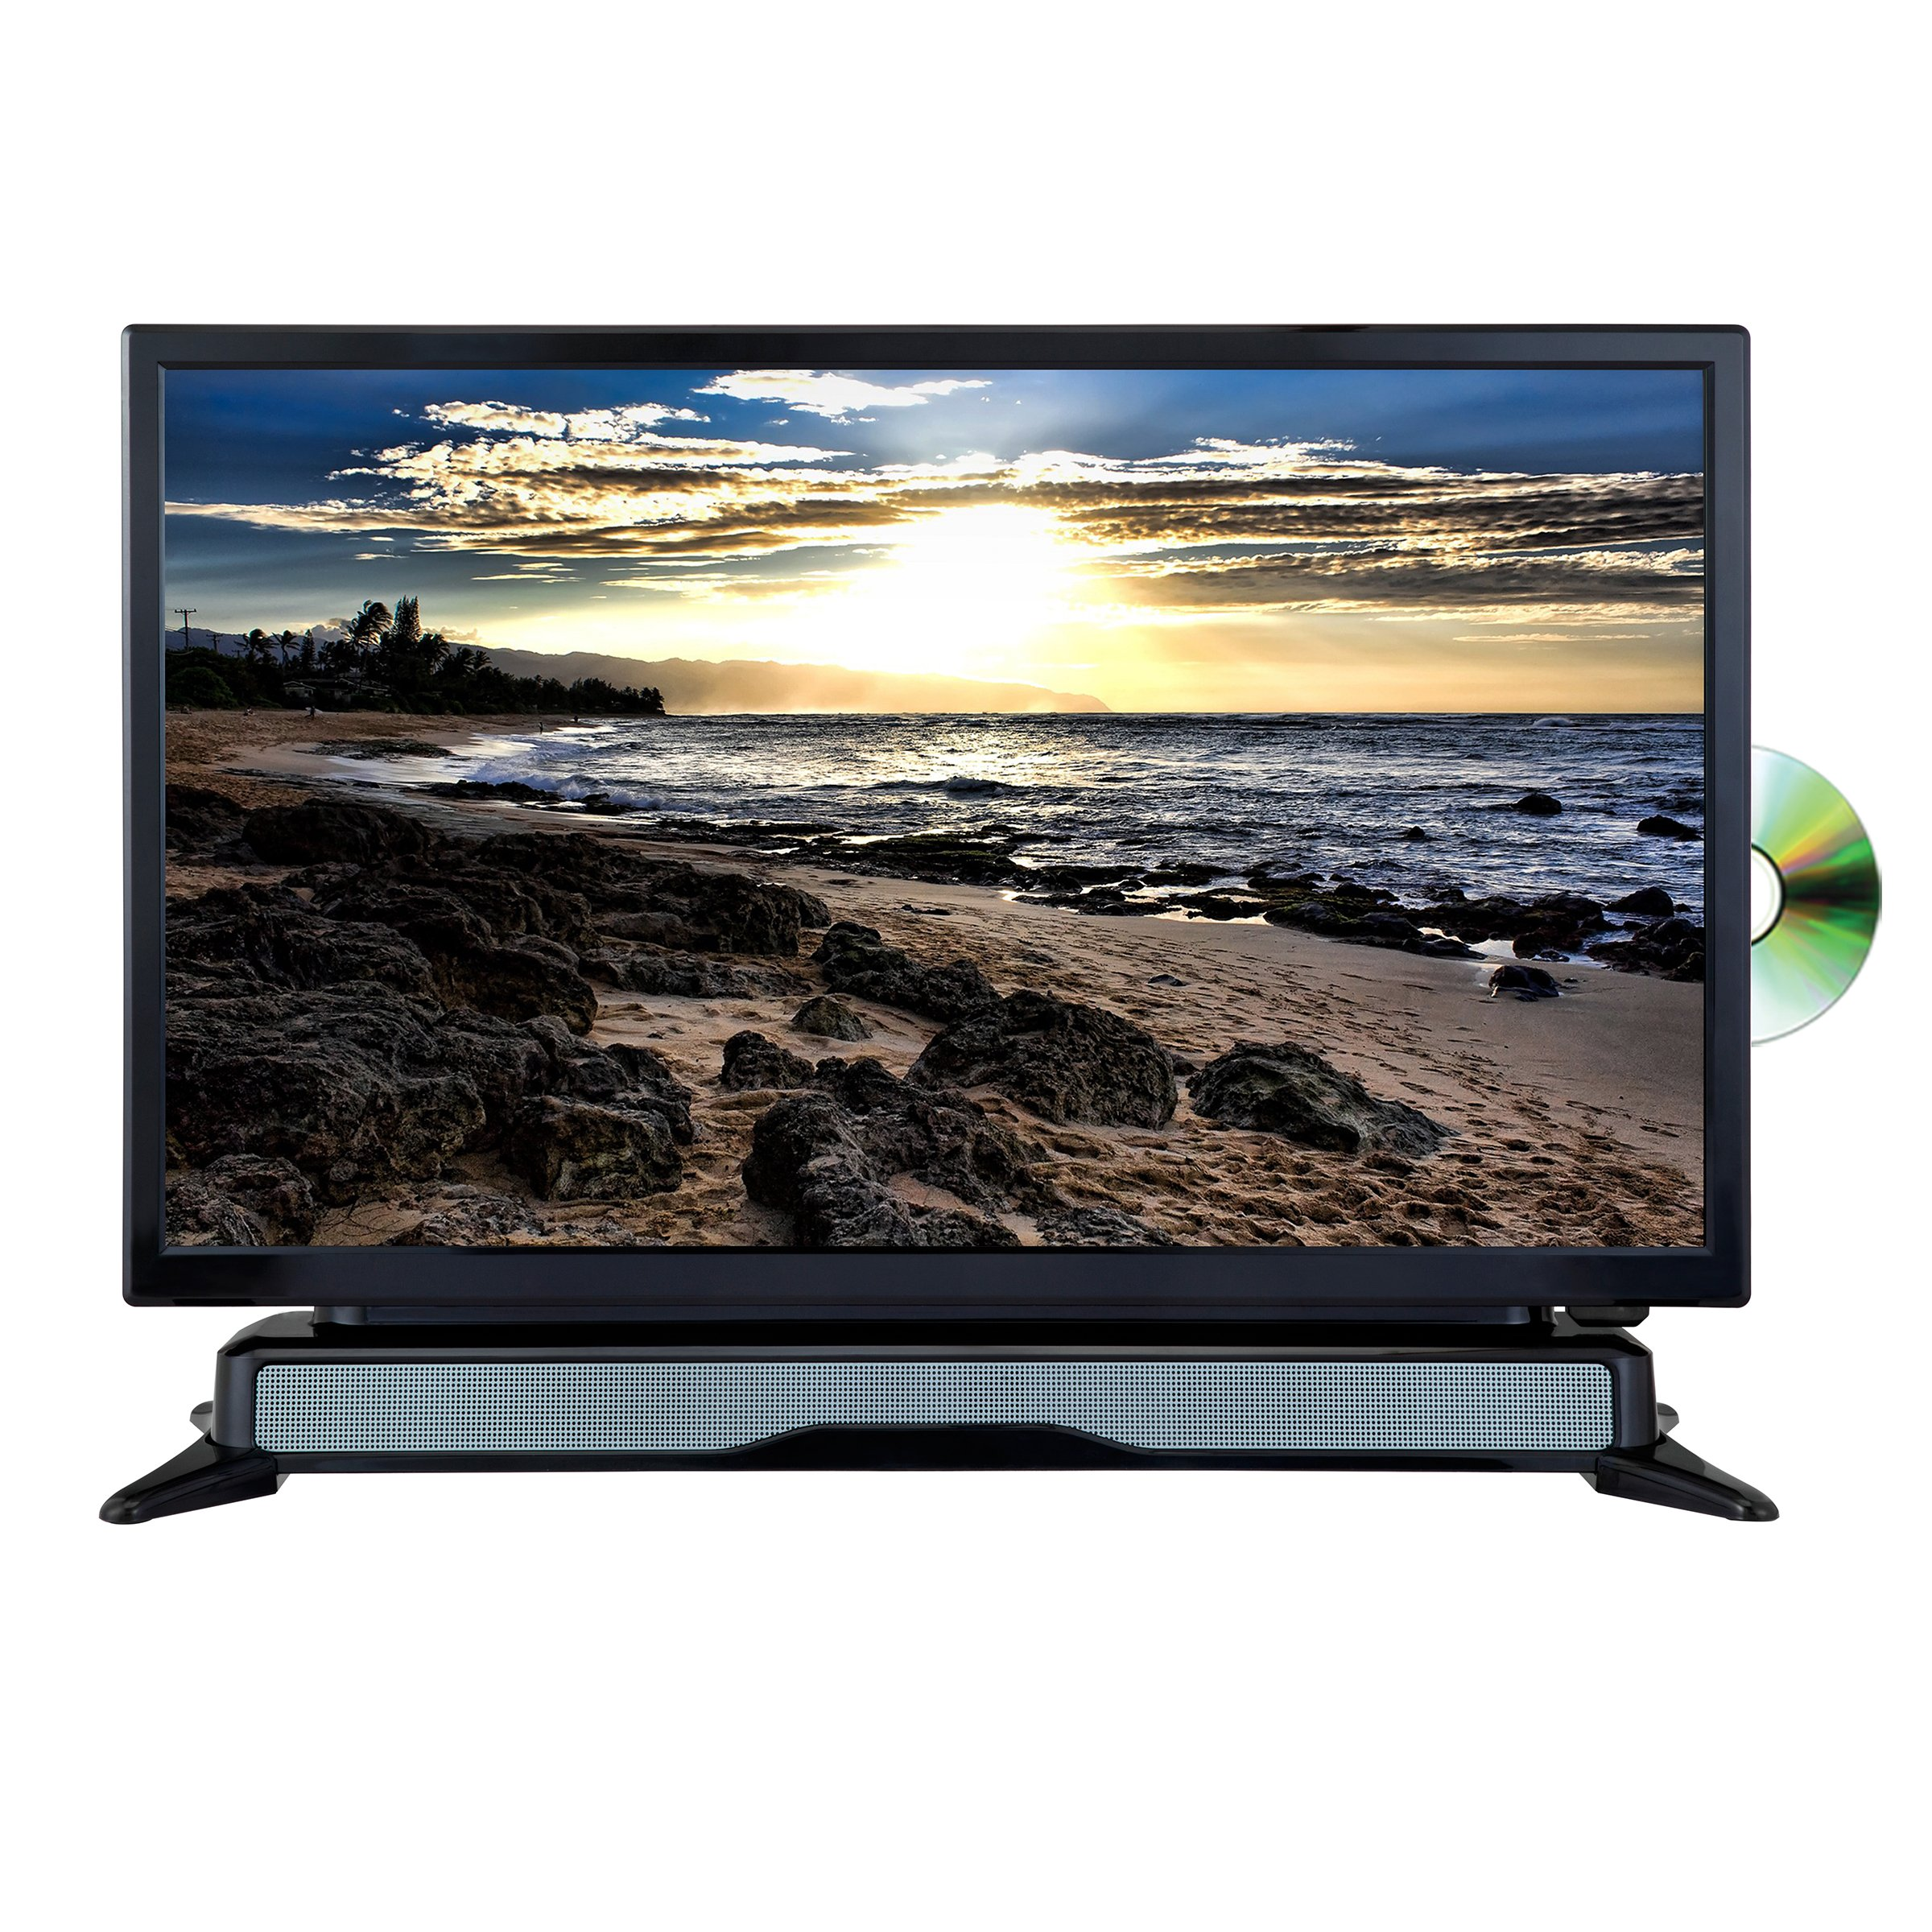 Cheap 24 Tv Combo Dvd, find 24 Tv Combo Dvd deals on line at